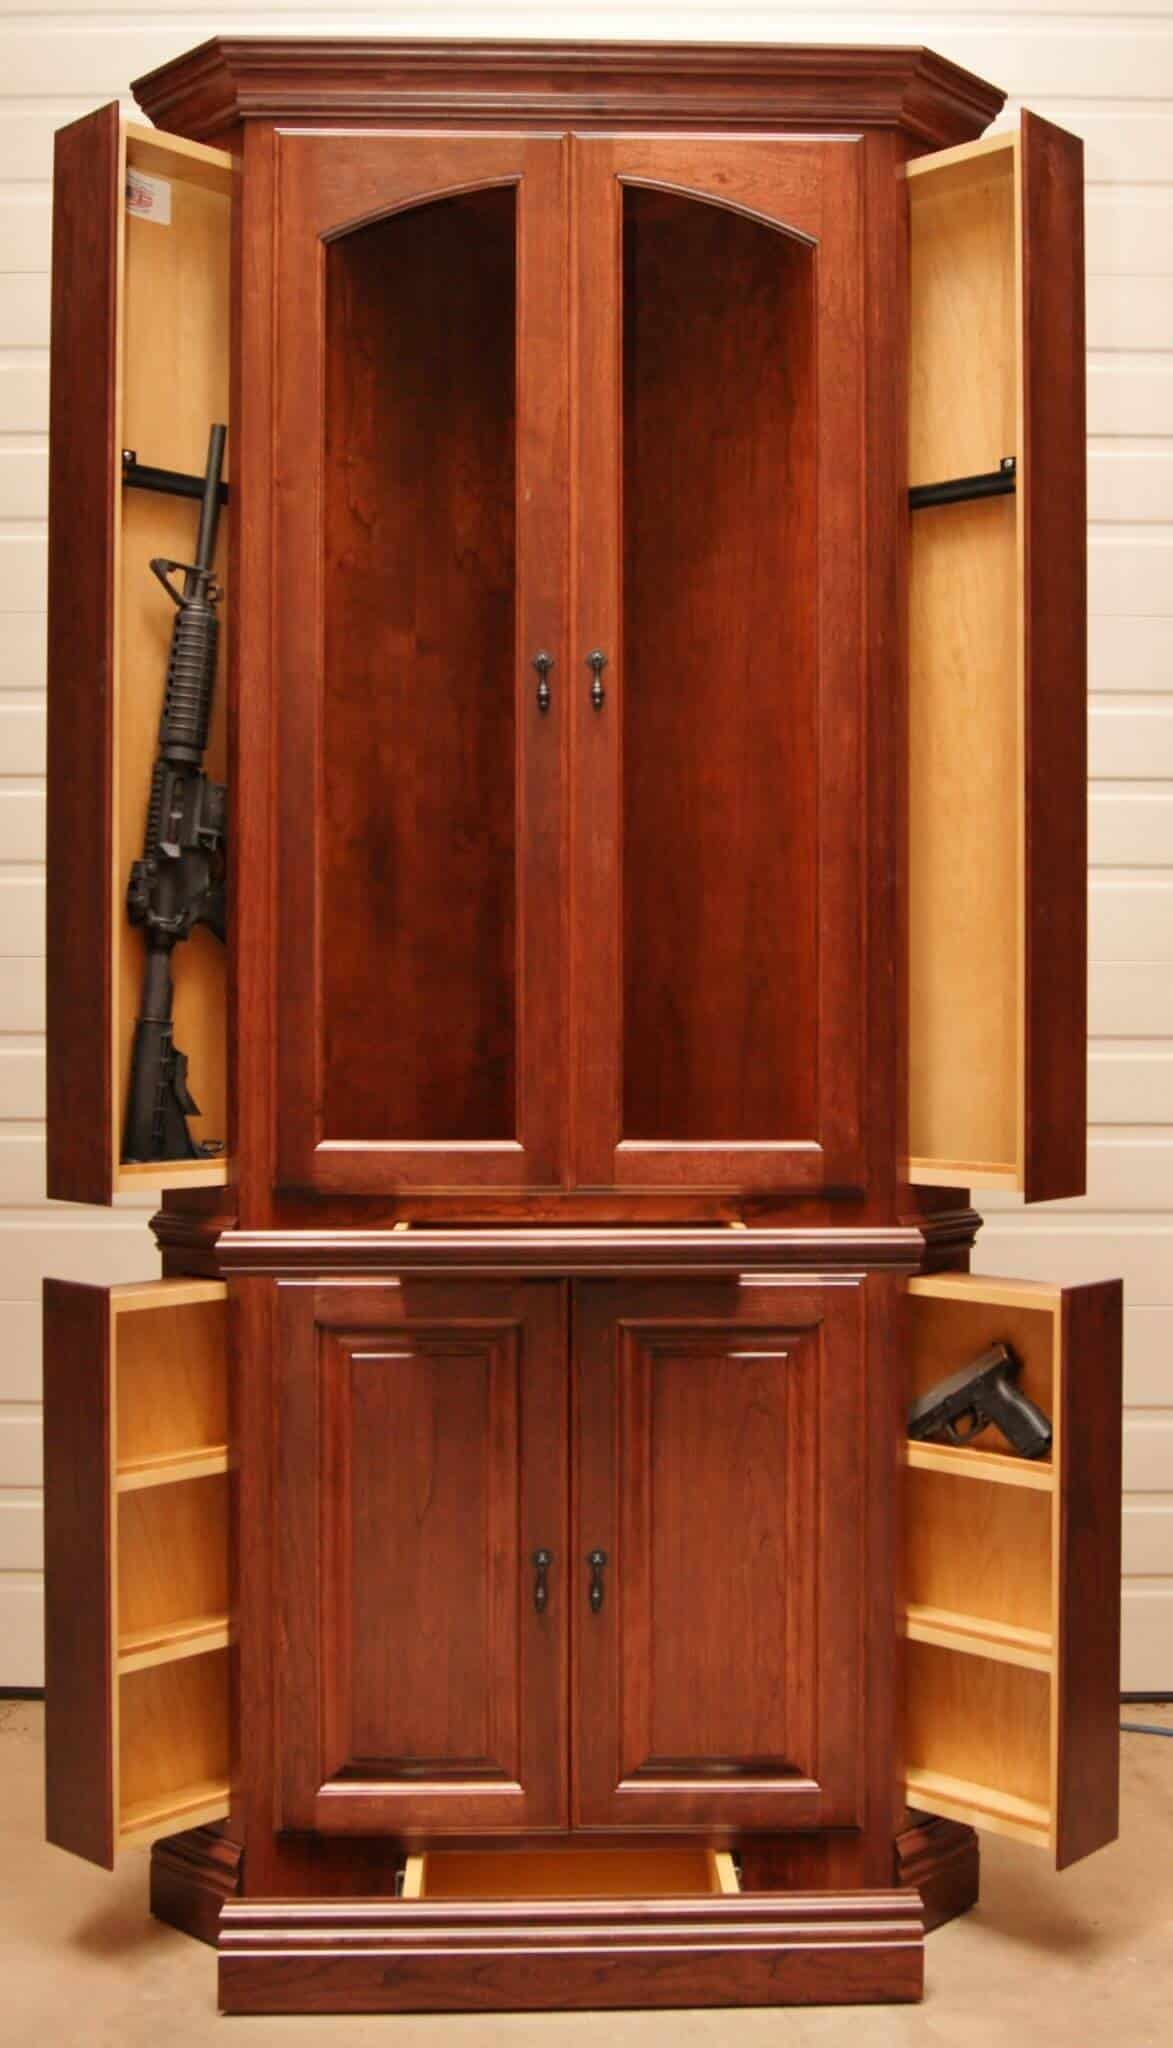 100 money-saving ways to protect your guns. cheap gun safe